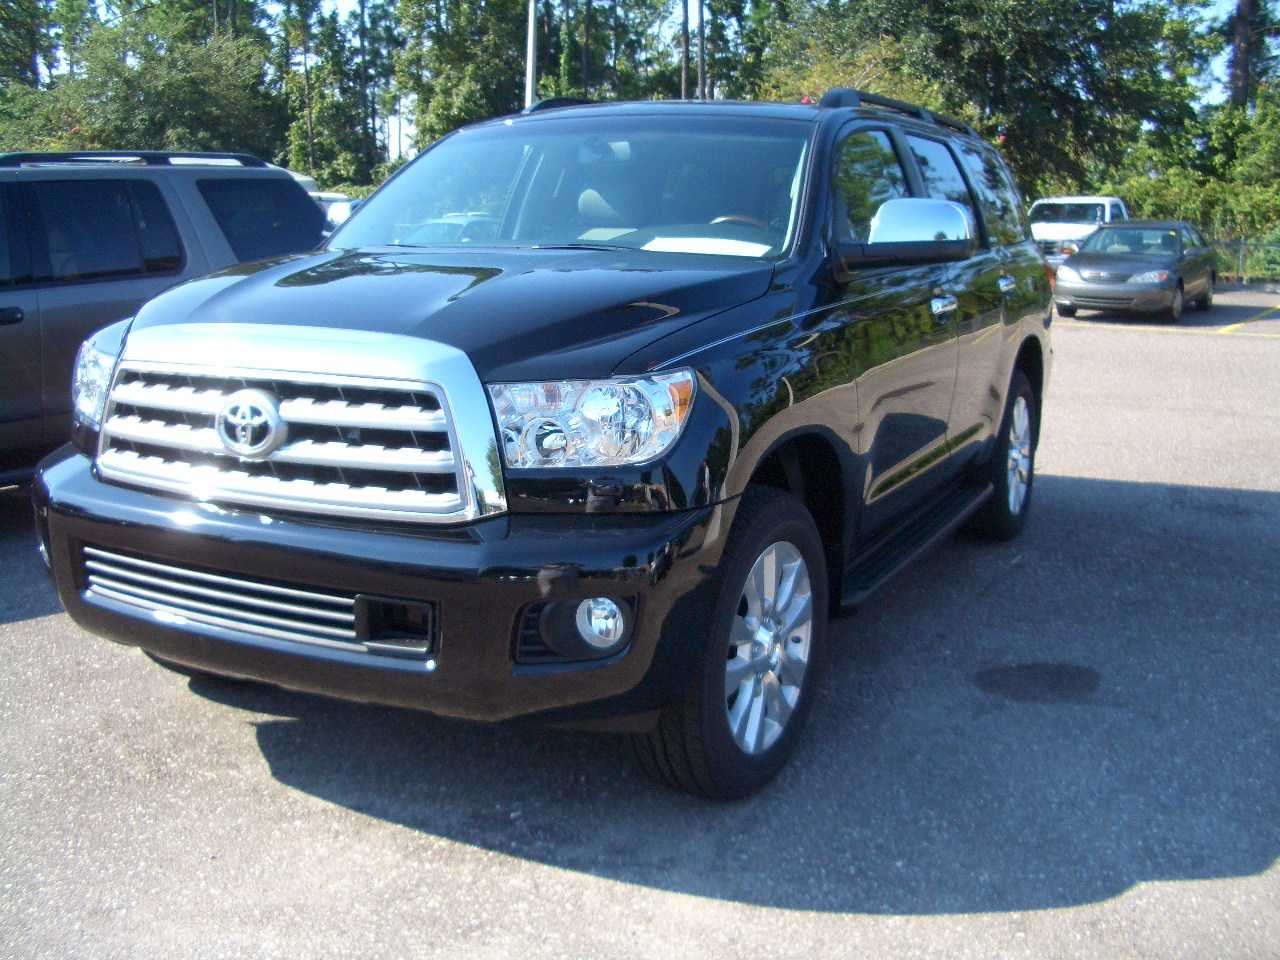 2009 toyota sequoia pictures 5700cc gasoline automatic for sale. Black Bedroom Furniture Sets. Home Design Ideas